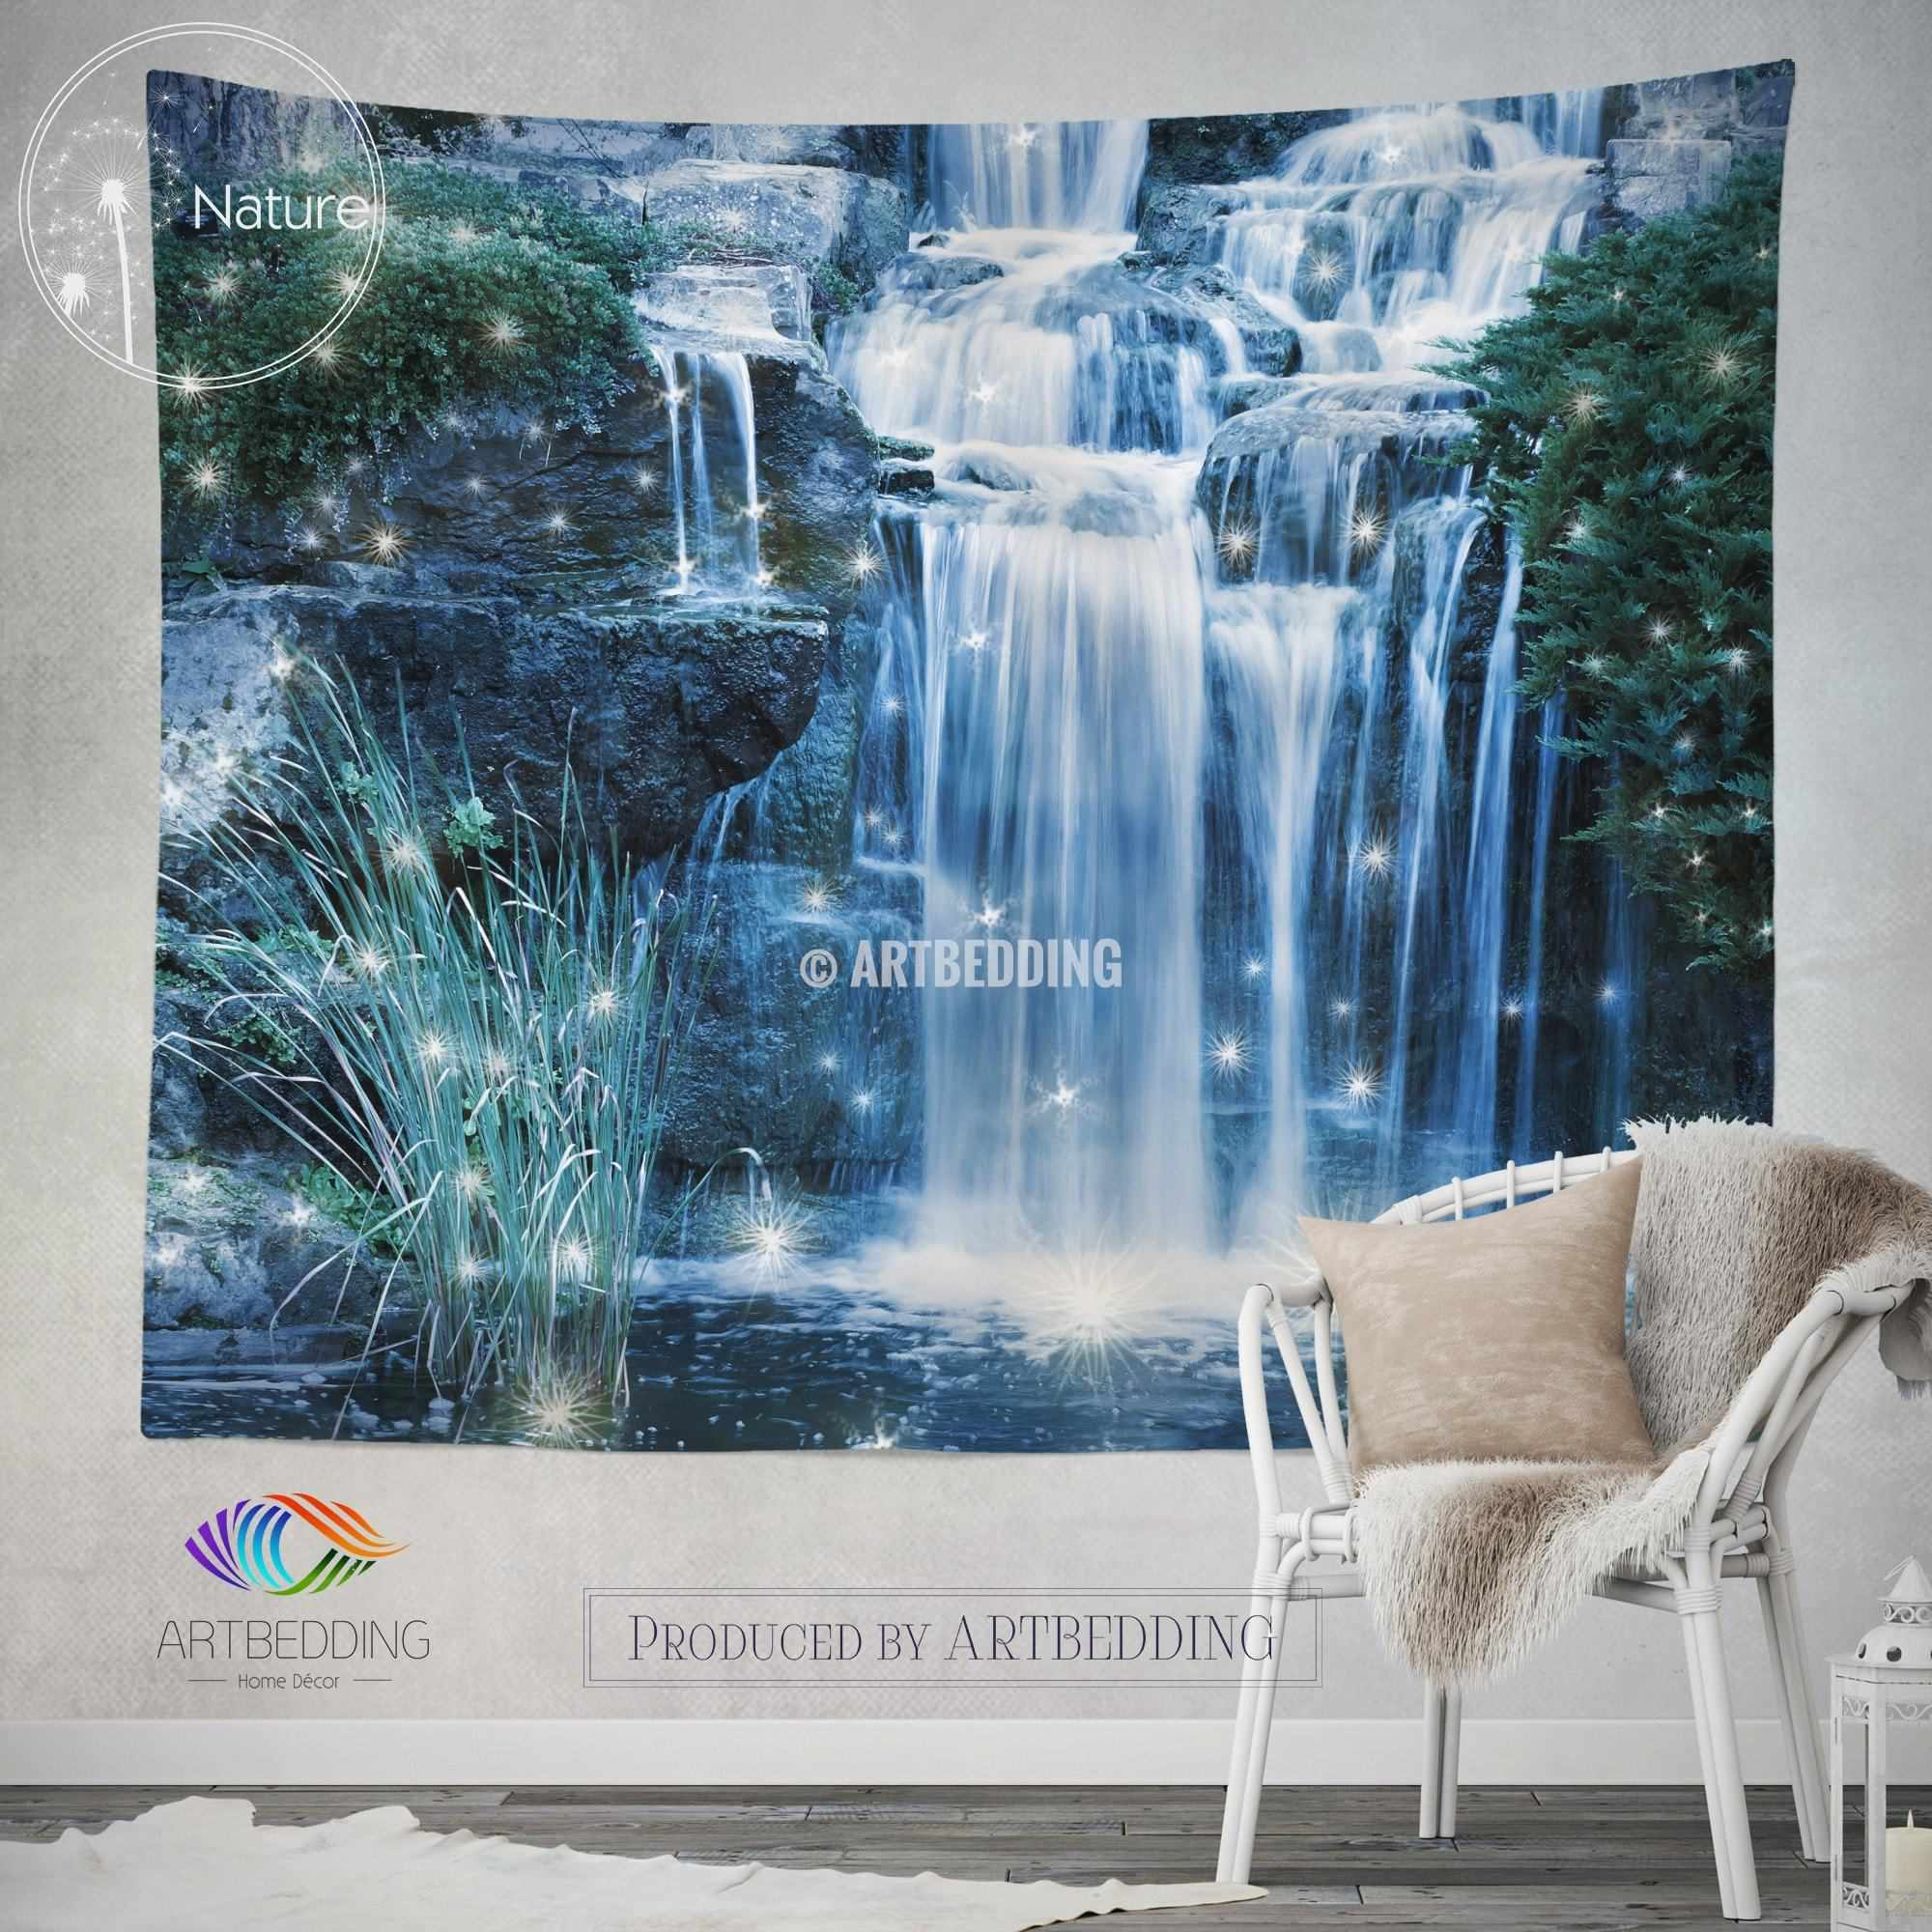 Magical Waterfall wall tapestry  Nature wall decor  Night waterfall wall  art print  bedroom livingroom wall tapestries  boho wall hanging  bohemian  decorWaterfall wall tapestry  Nature wall decor  Night waterfall wall  . Living Room Waterfall. Home Design Ideas